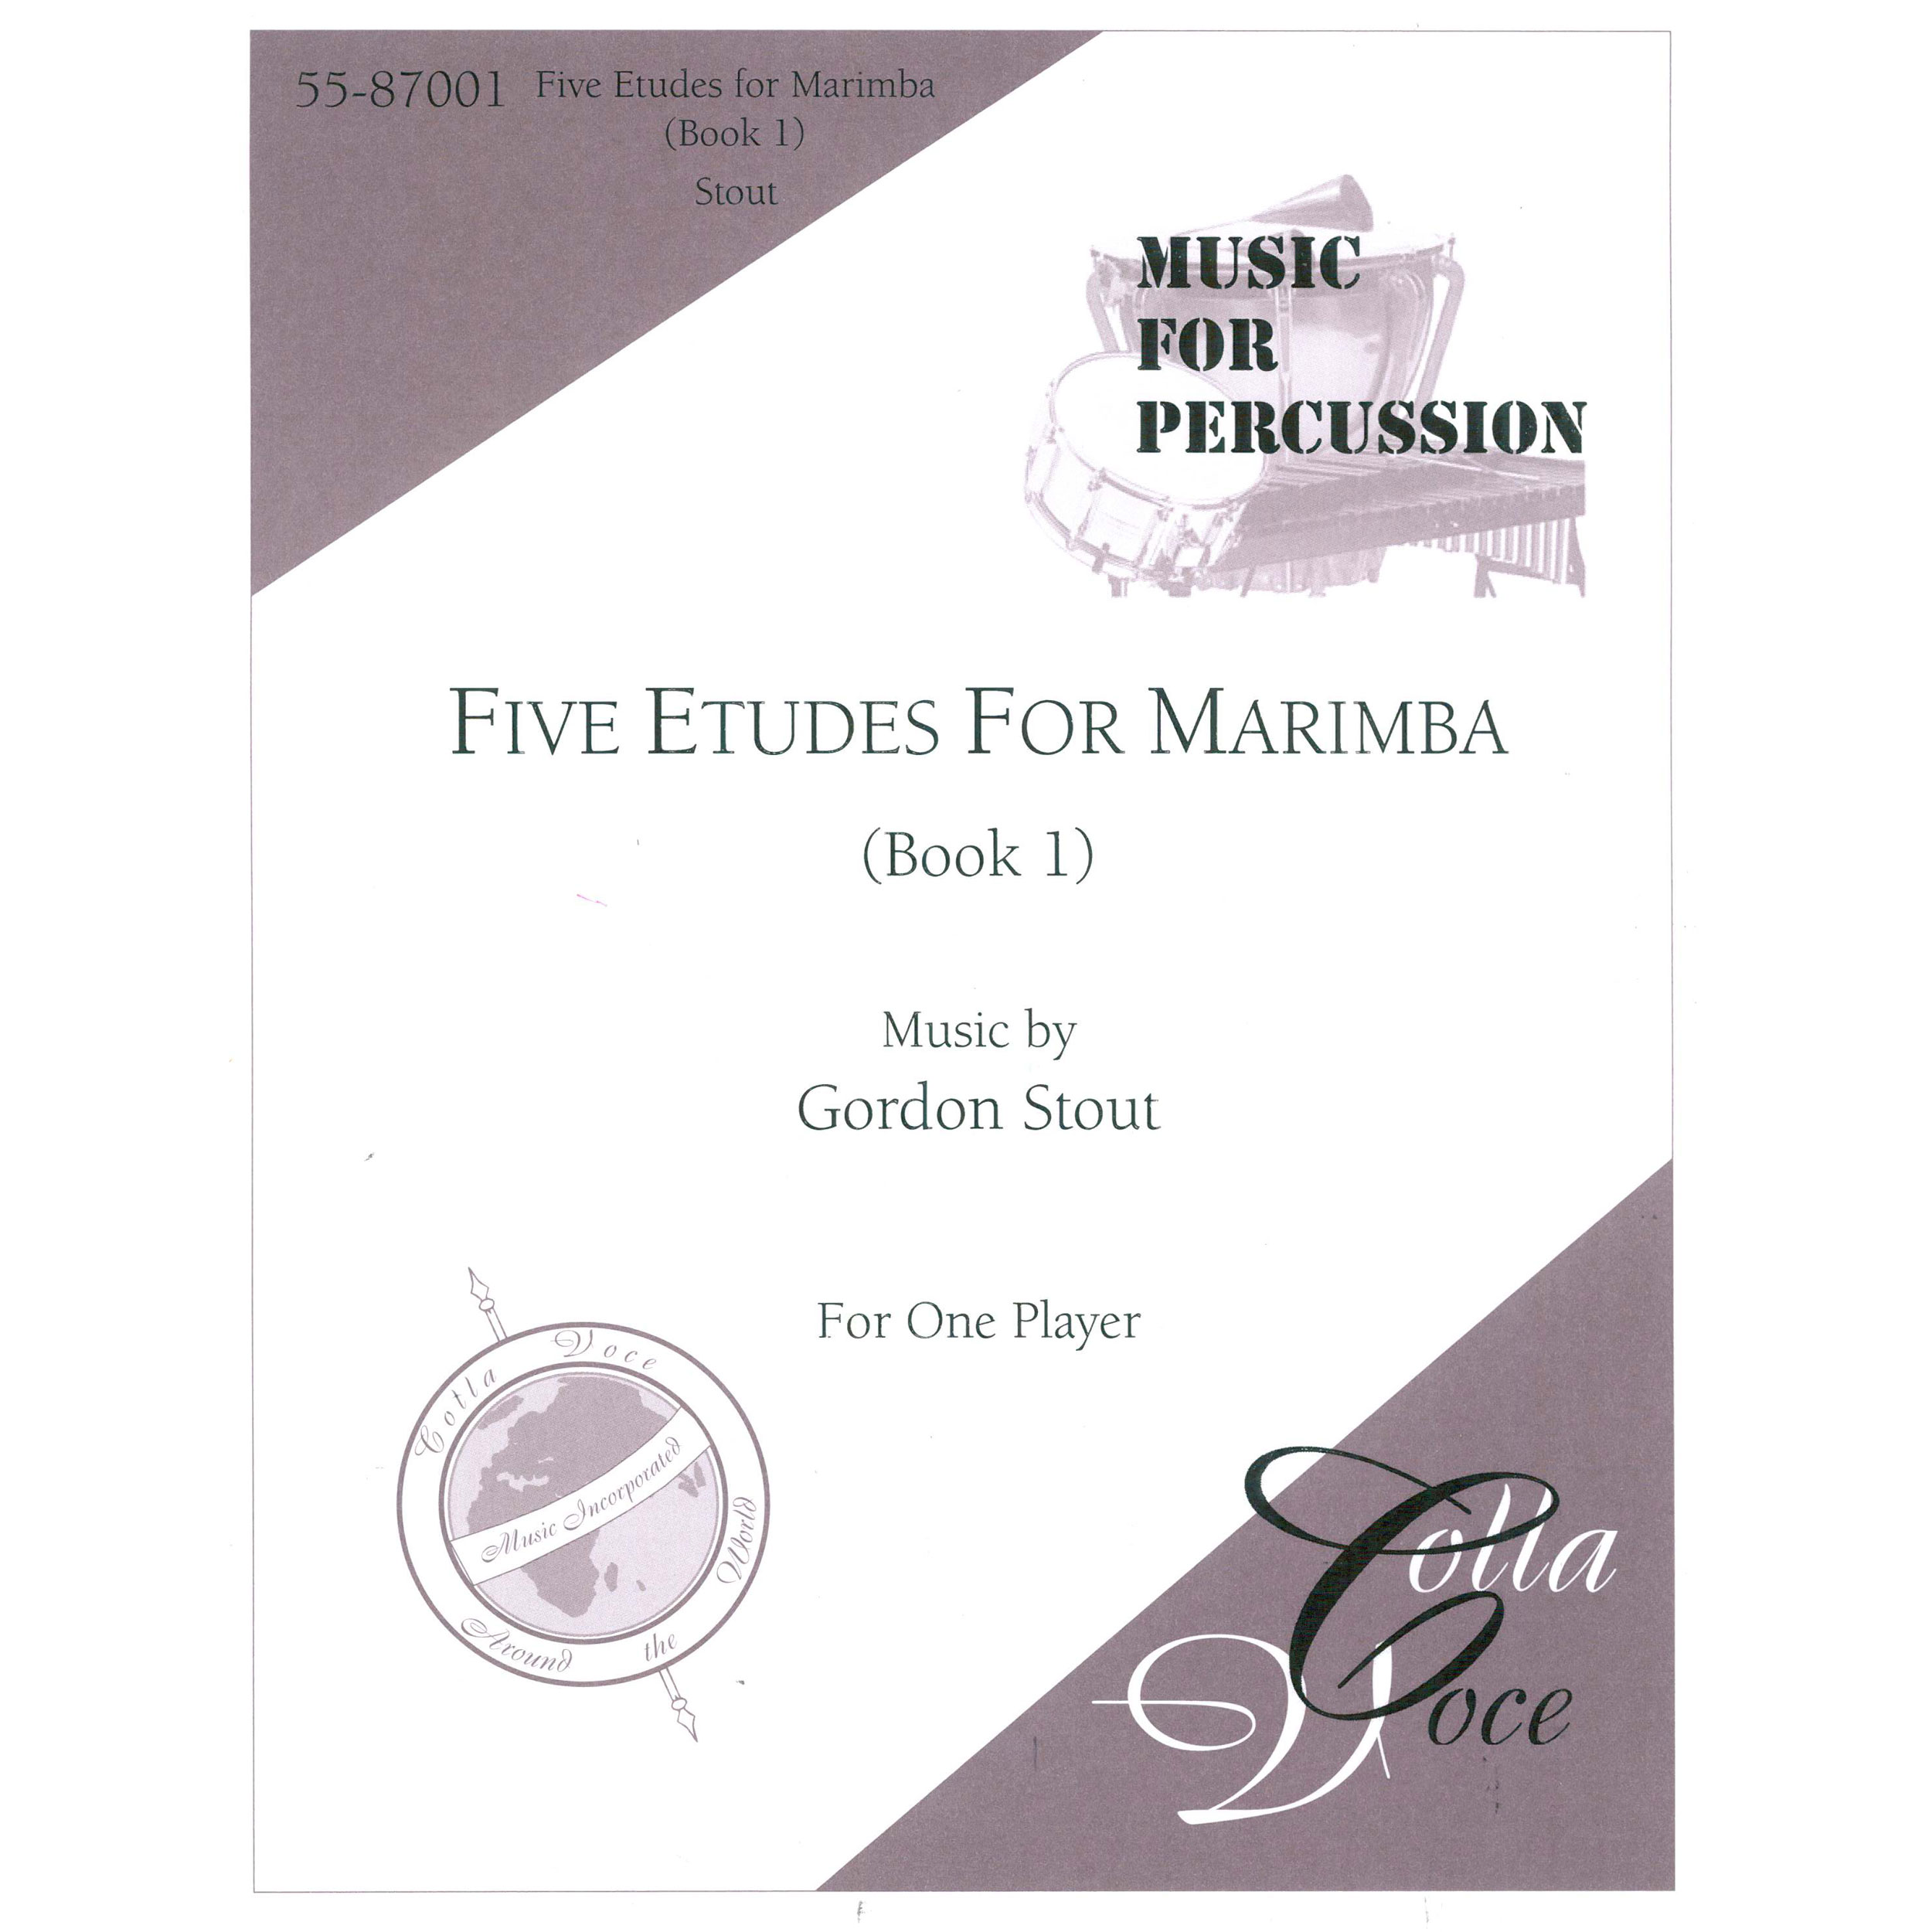 Etudes for Marimba, Book 1 by Gordon Stout